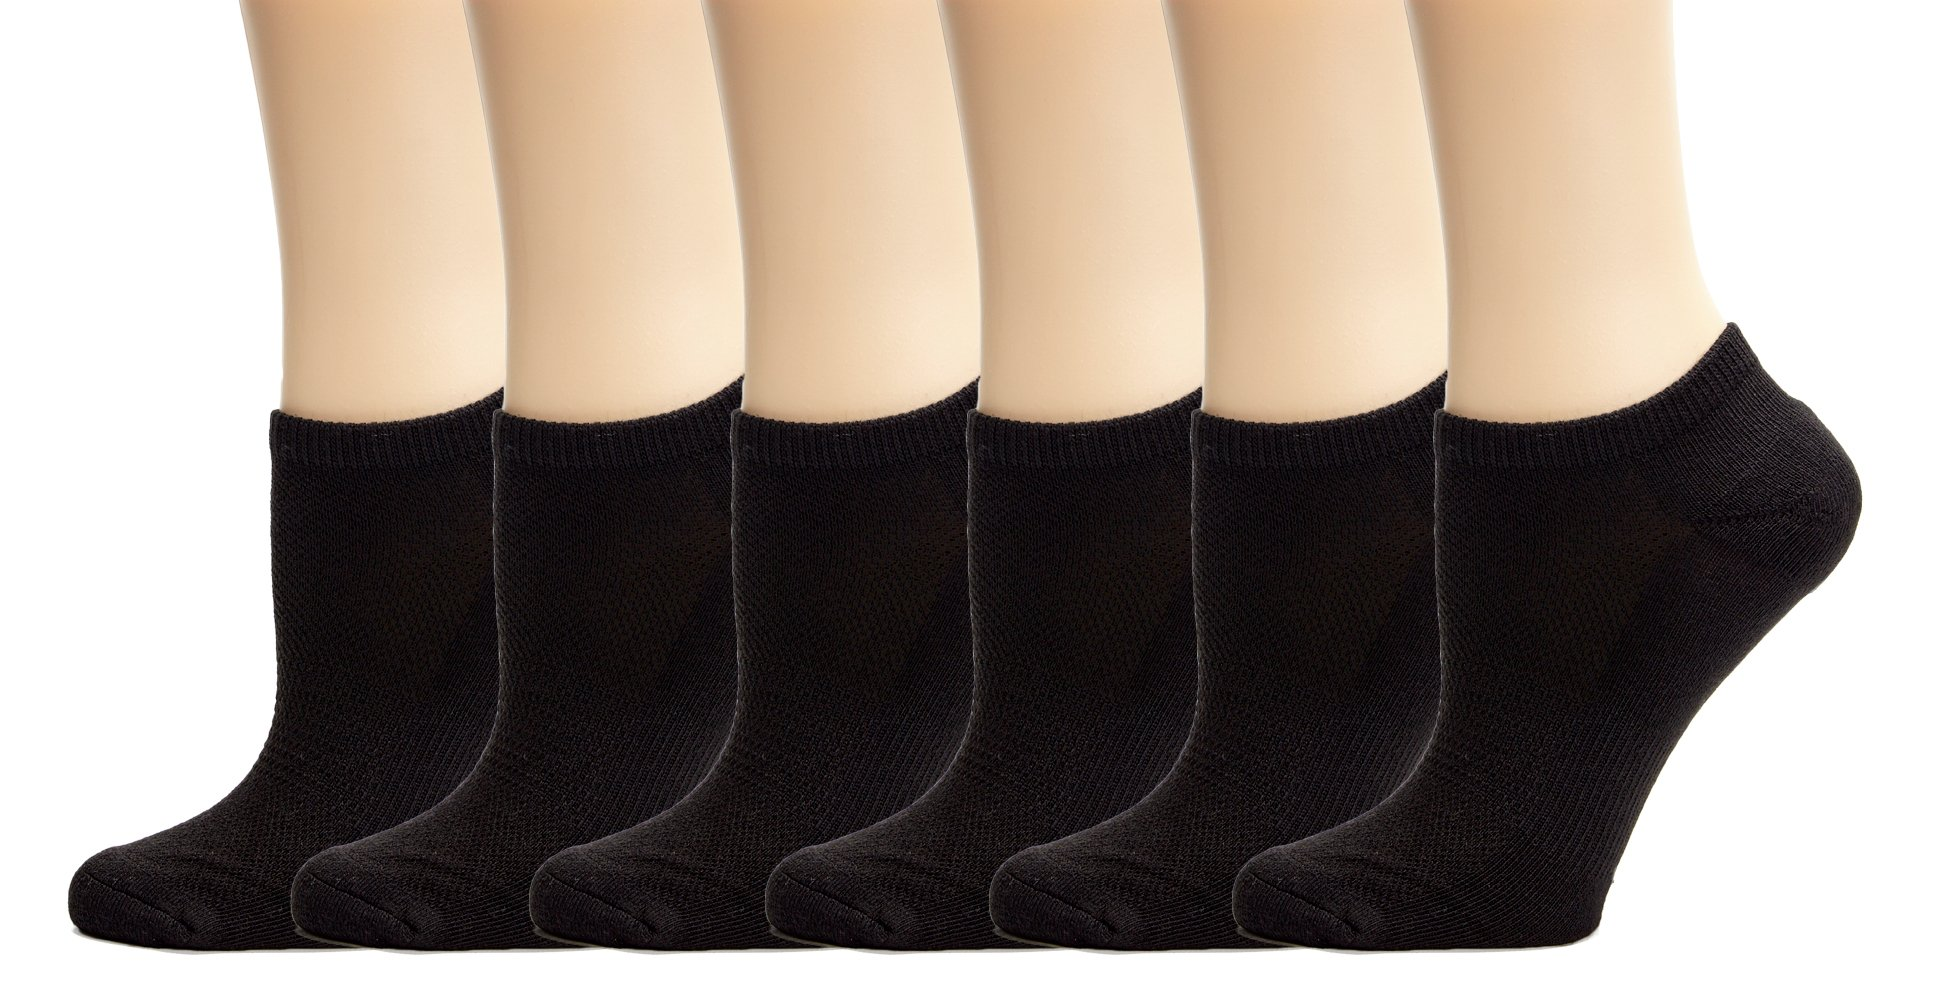 Silky Toes Athletic Socks 6 Pack - Women's No Show, Low Cut, Ankle Running Sock